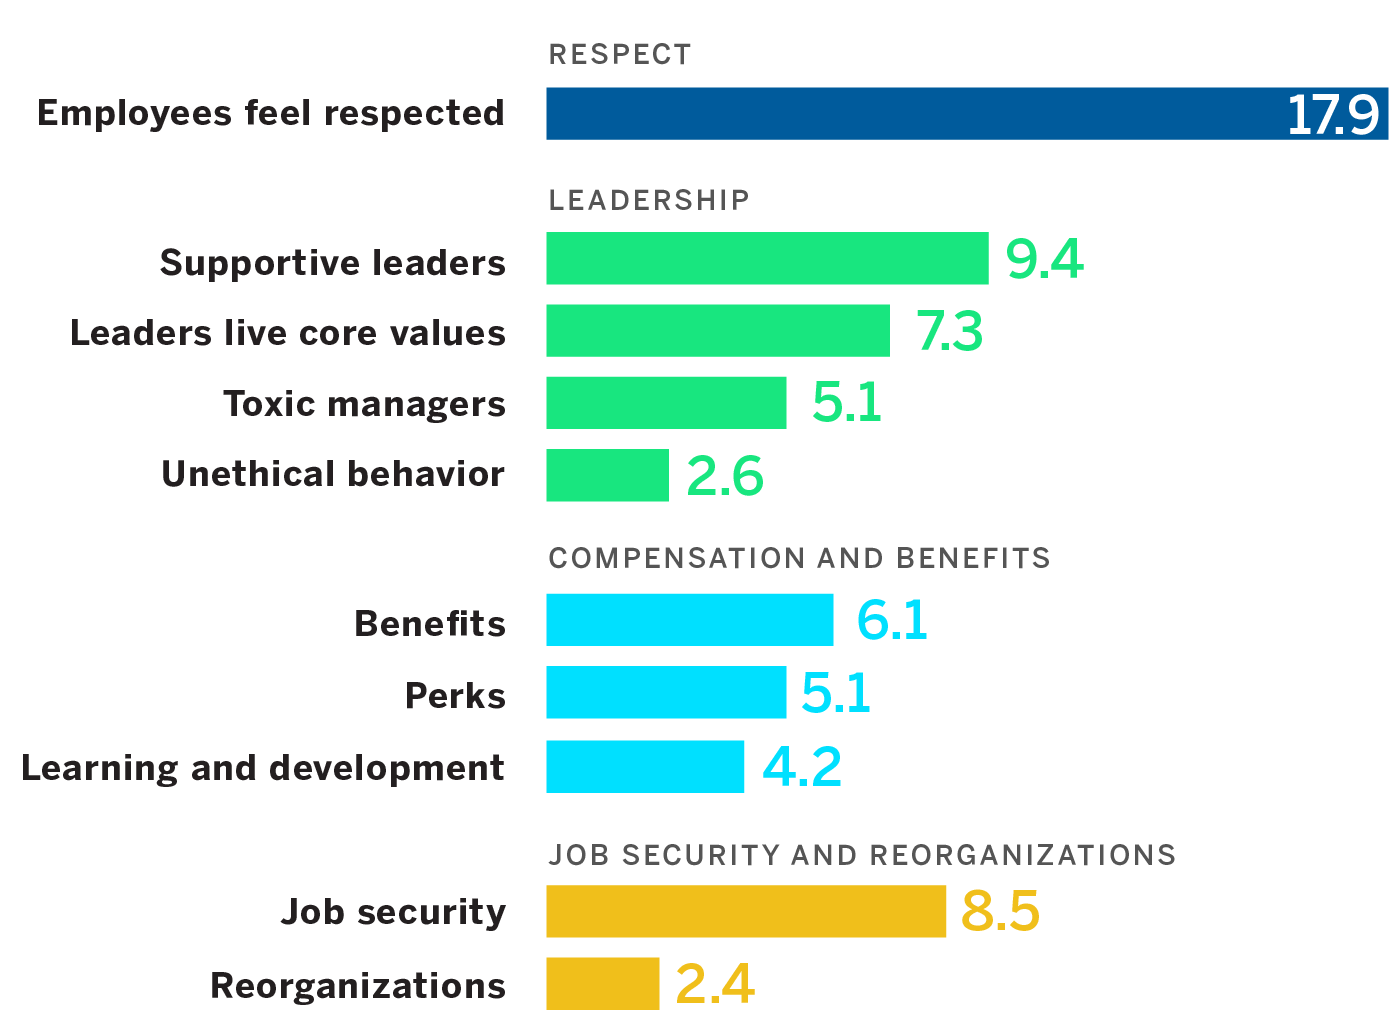 Corporate Culture Elements Most Important to Employees